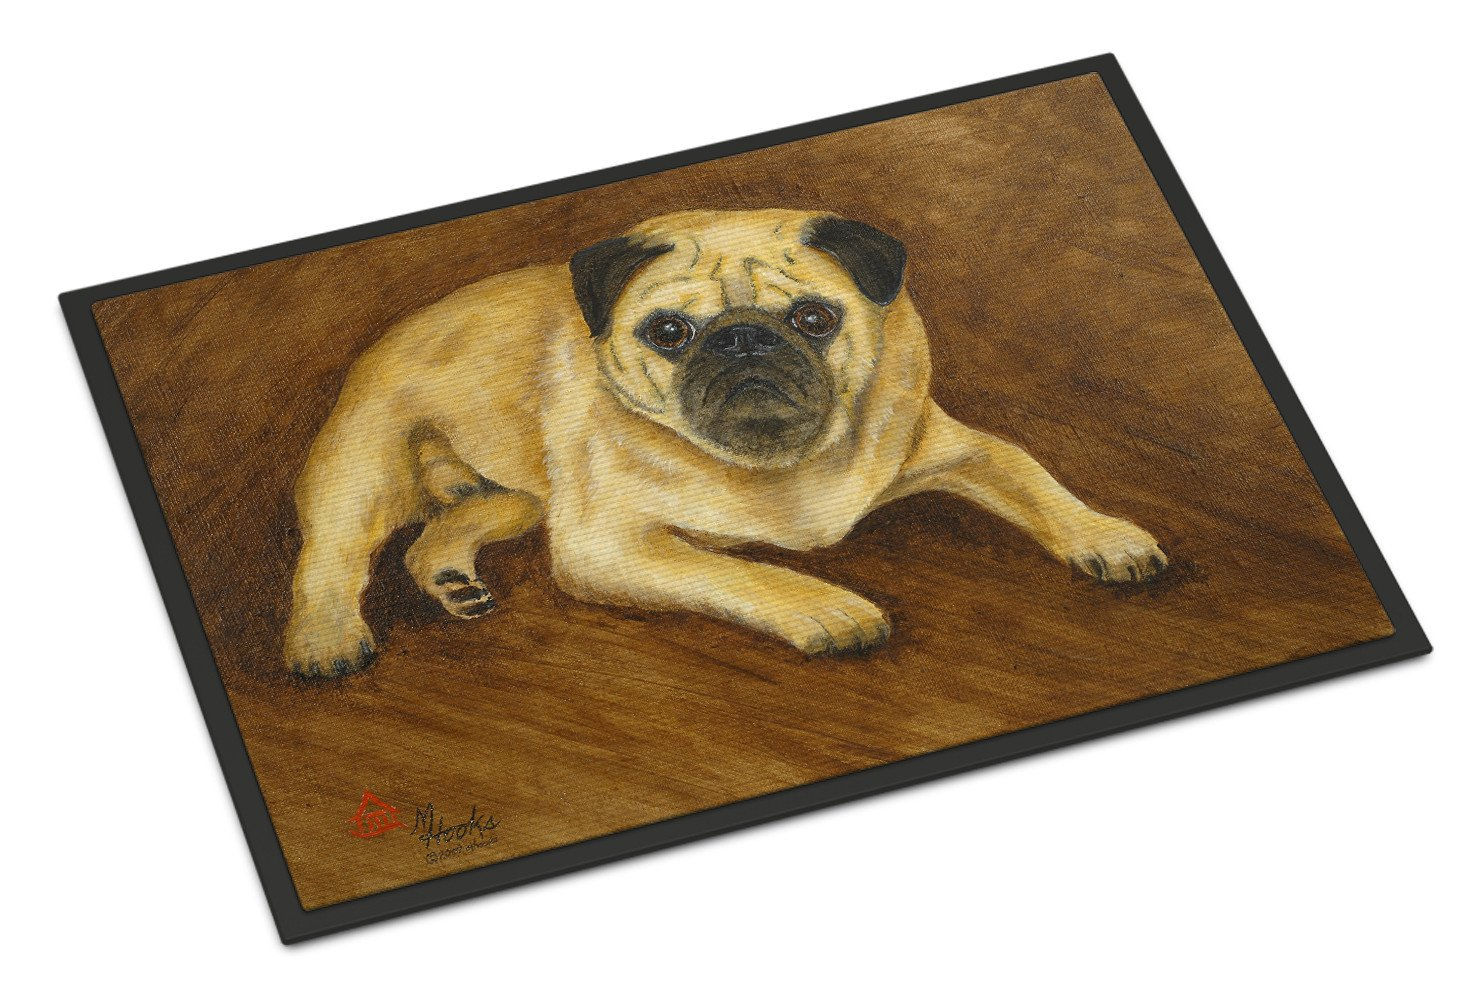 Fawn Pug Roscoe Indoor or Outdoor Mat 24x36 MH1062JMAT - the-store.com